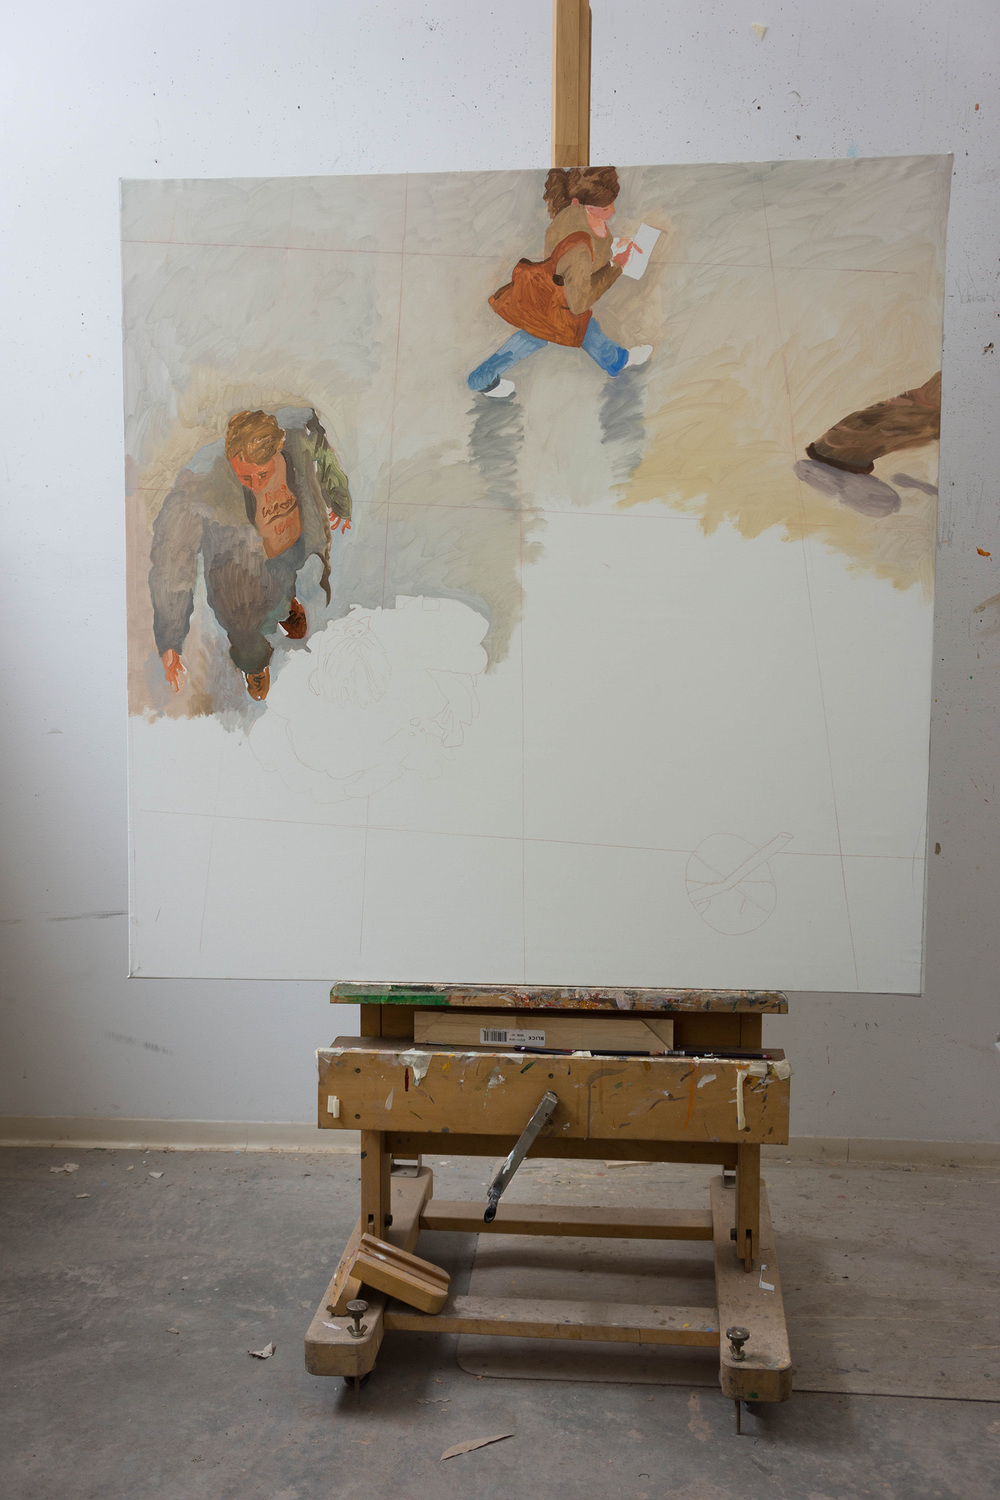 site-2-28-15 Parade 24 stage 3 on easel.jpg